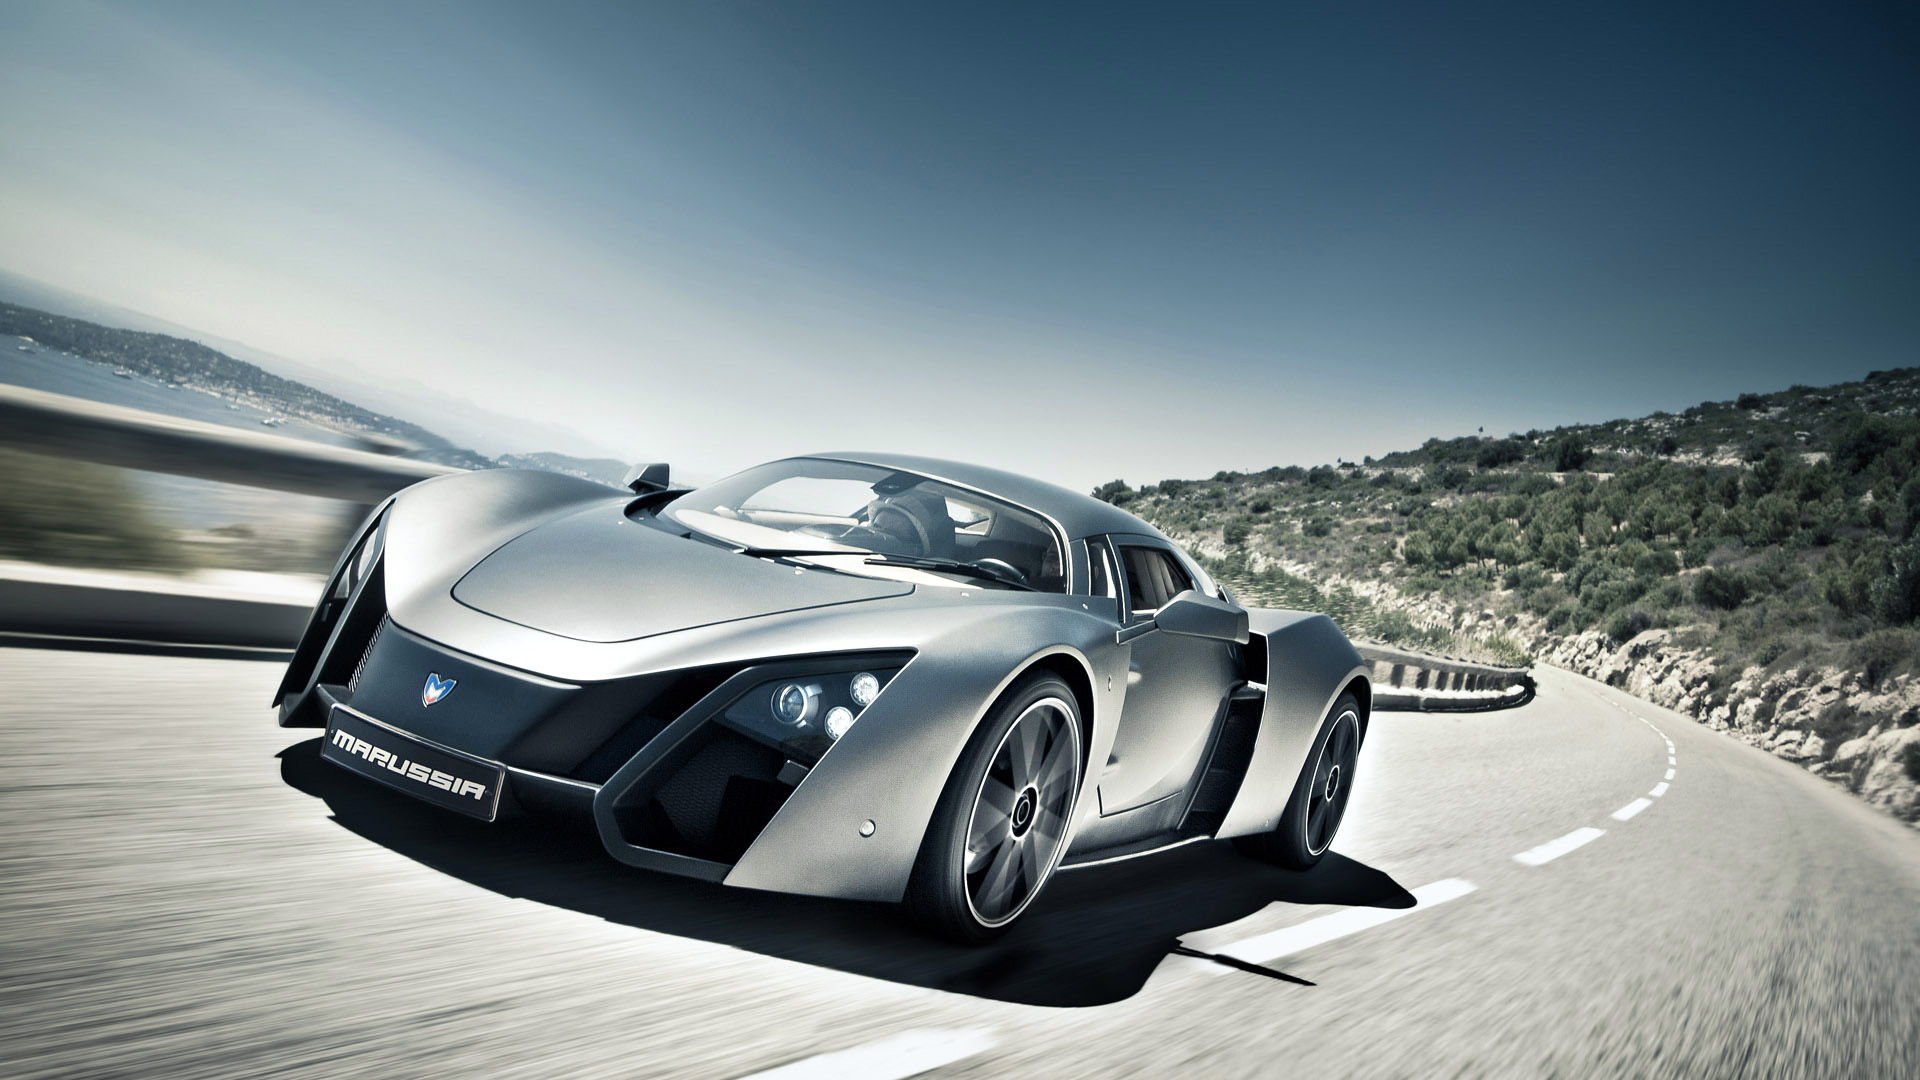 Marussia B2 Commercial Shooting - Automotive Photography by Loïc Kernen